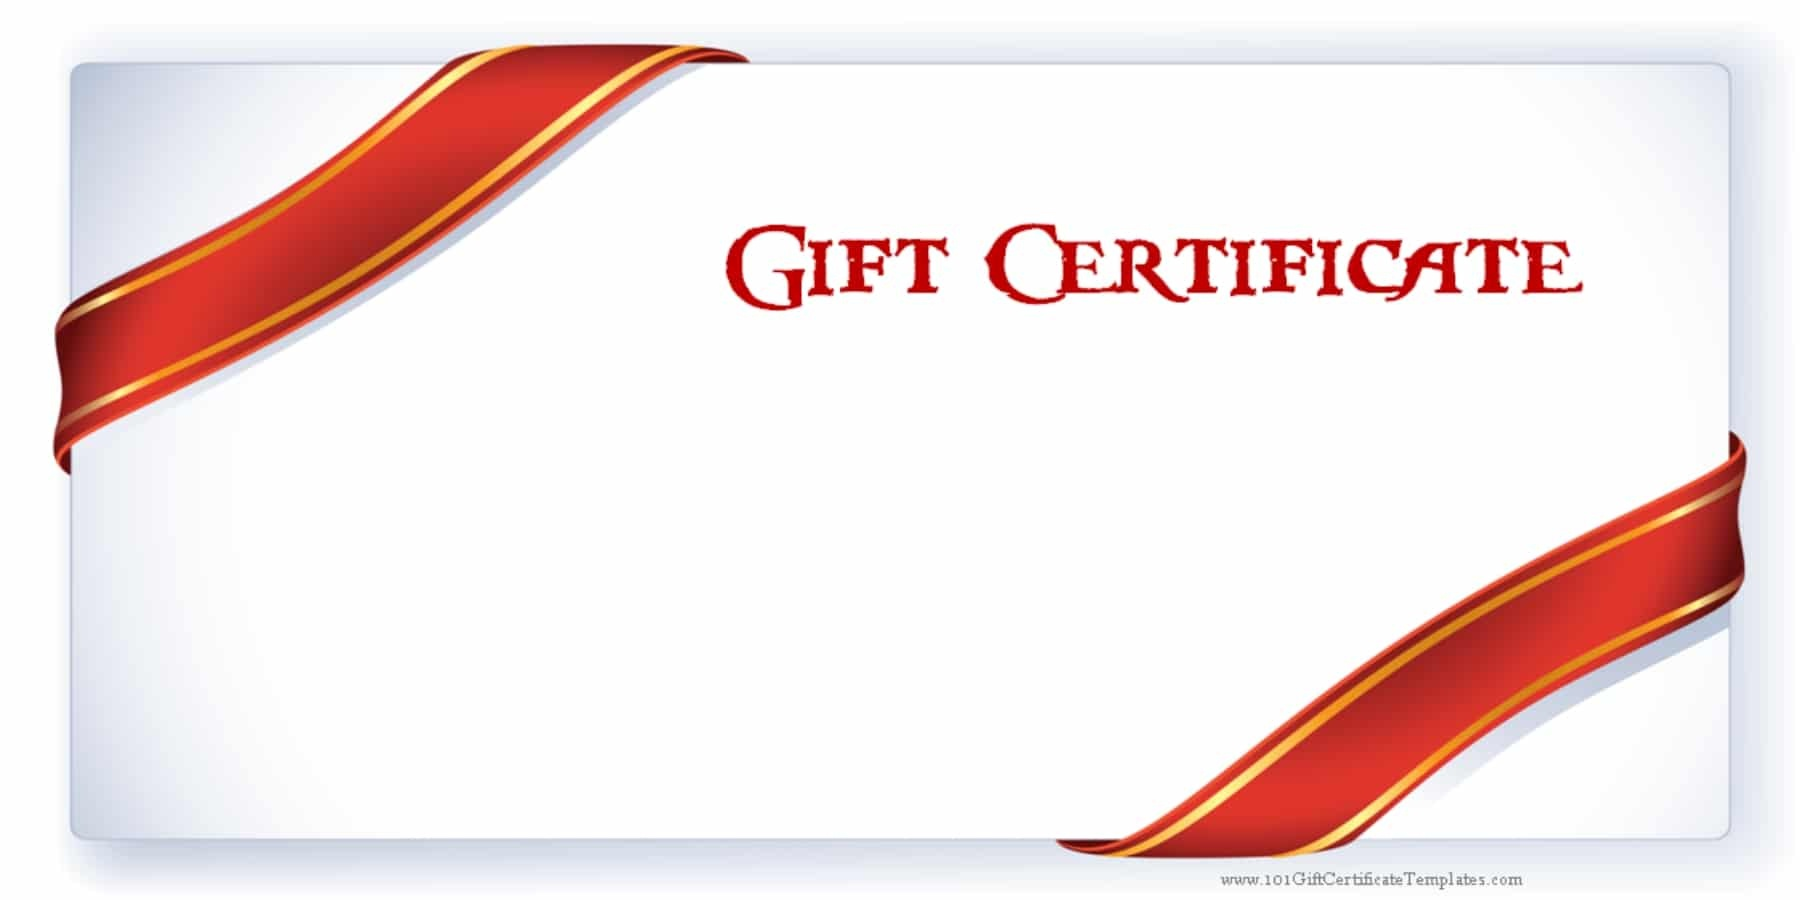 Printable Gift Certificate Templates - Free Printable Christmas Gift Voucher Templates